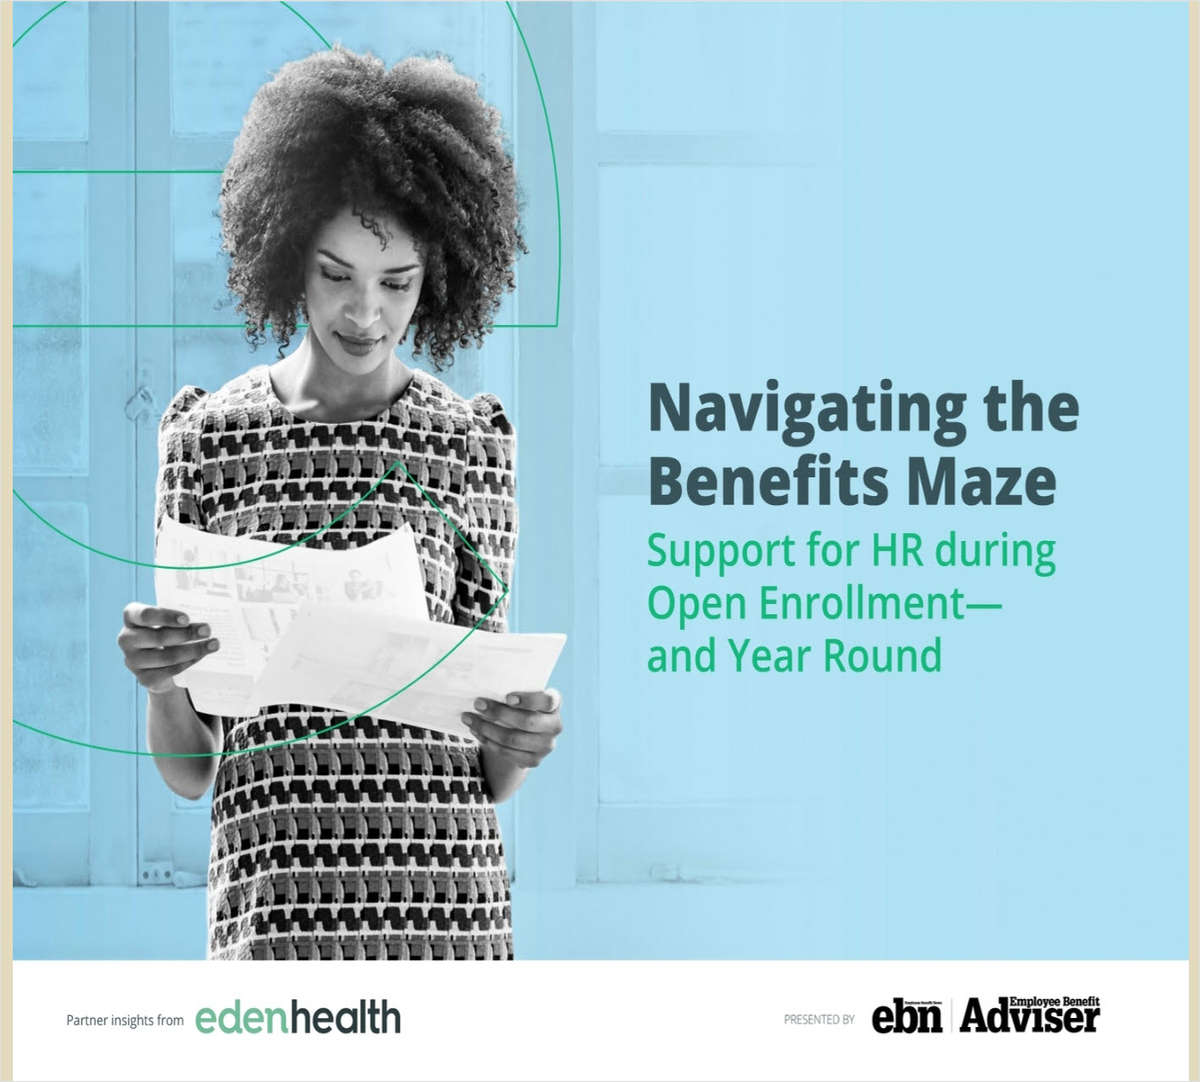 Navigating the Benefits Maze: Support for HR during Open Enrollment -- and Year Round